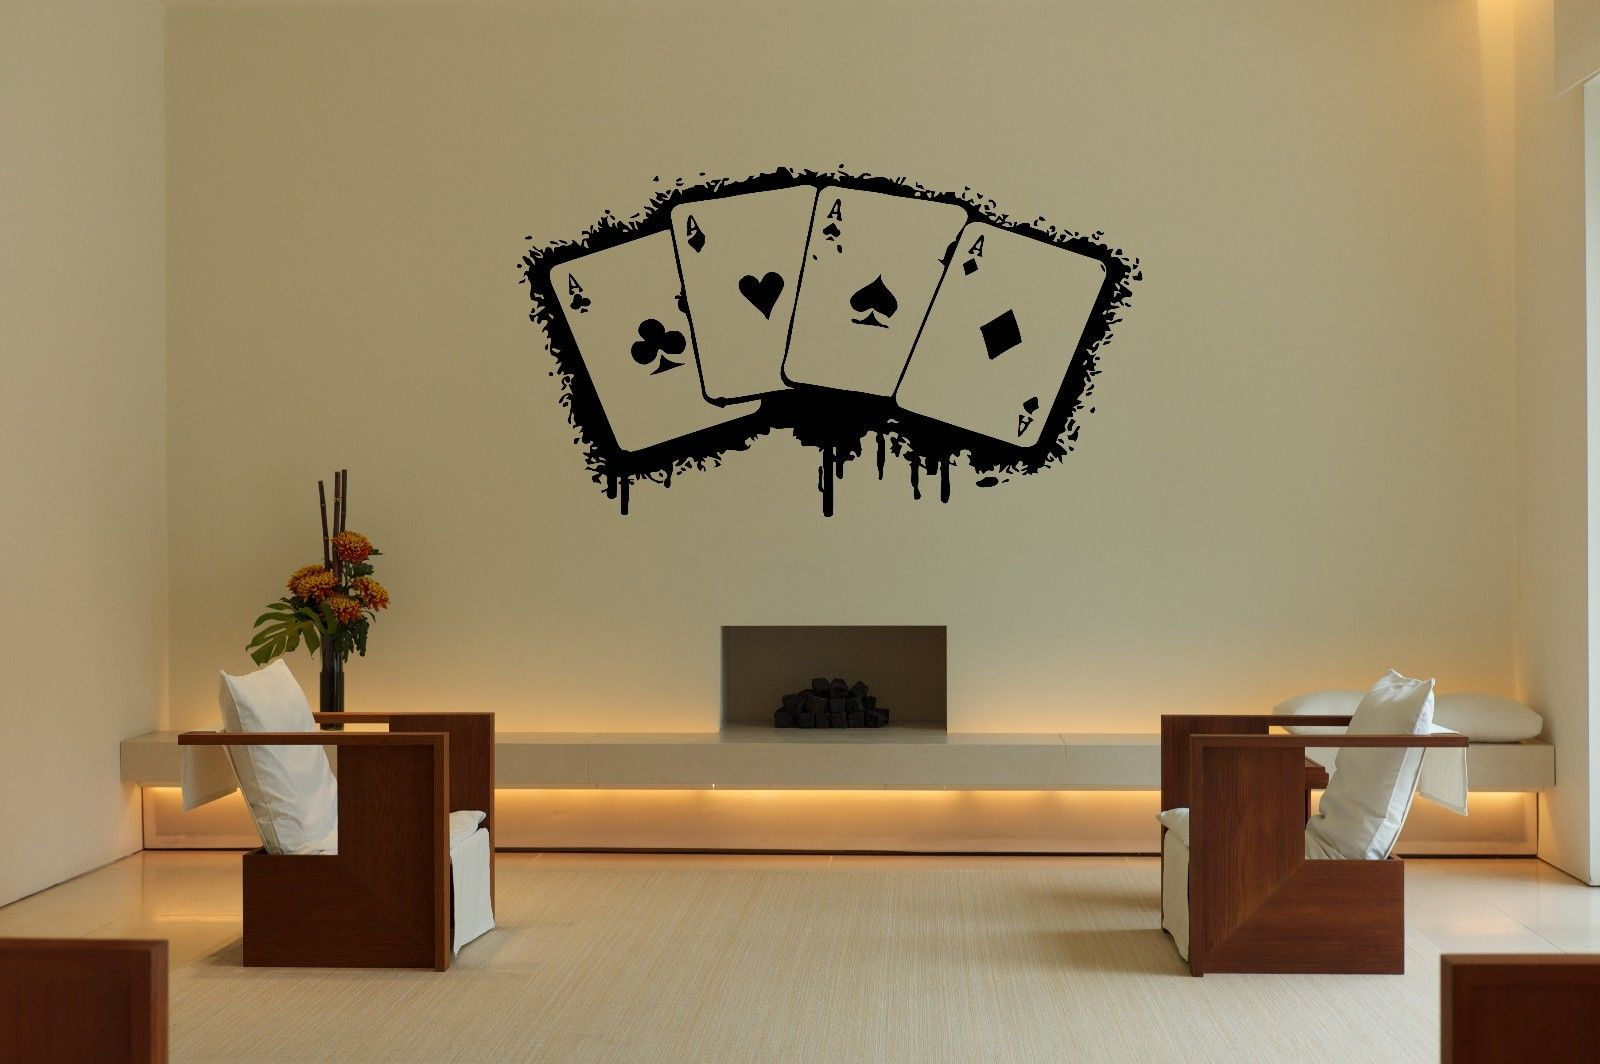 Hwhd wall vinyl sticker decal decor room design ace card - Design a room online free ...